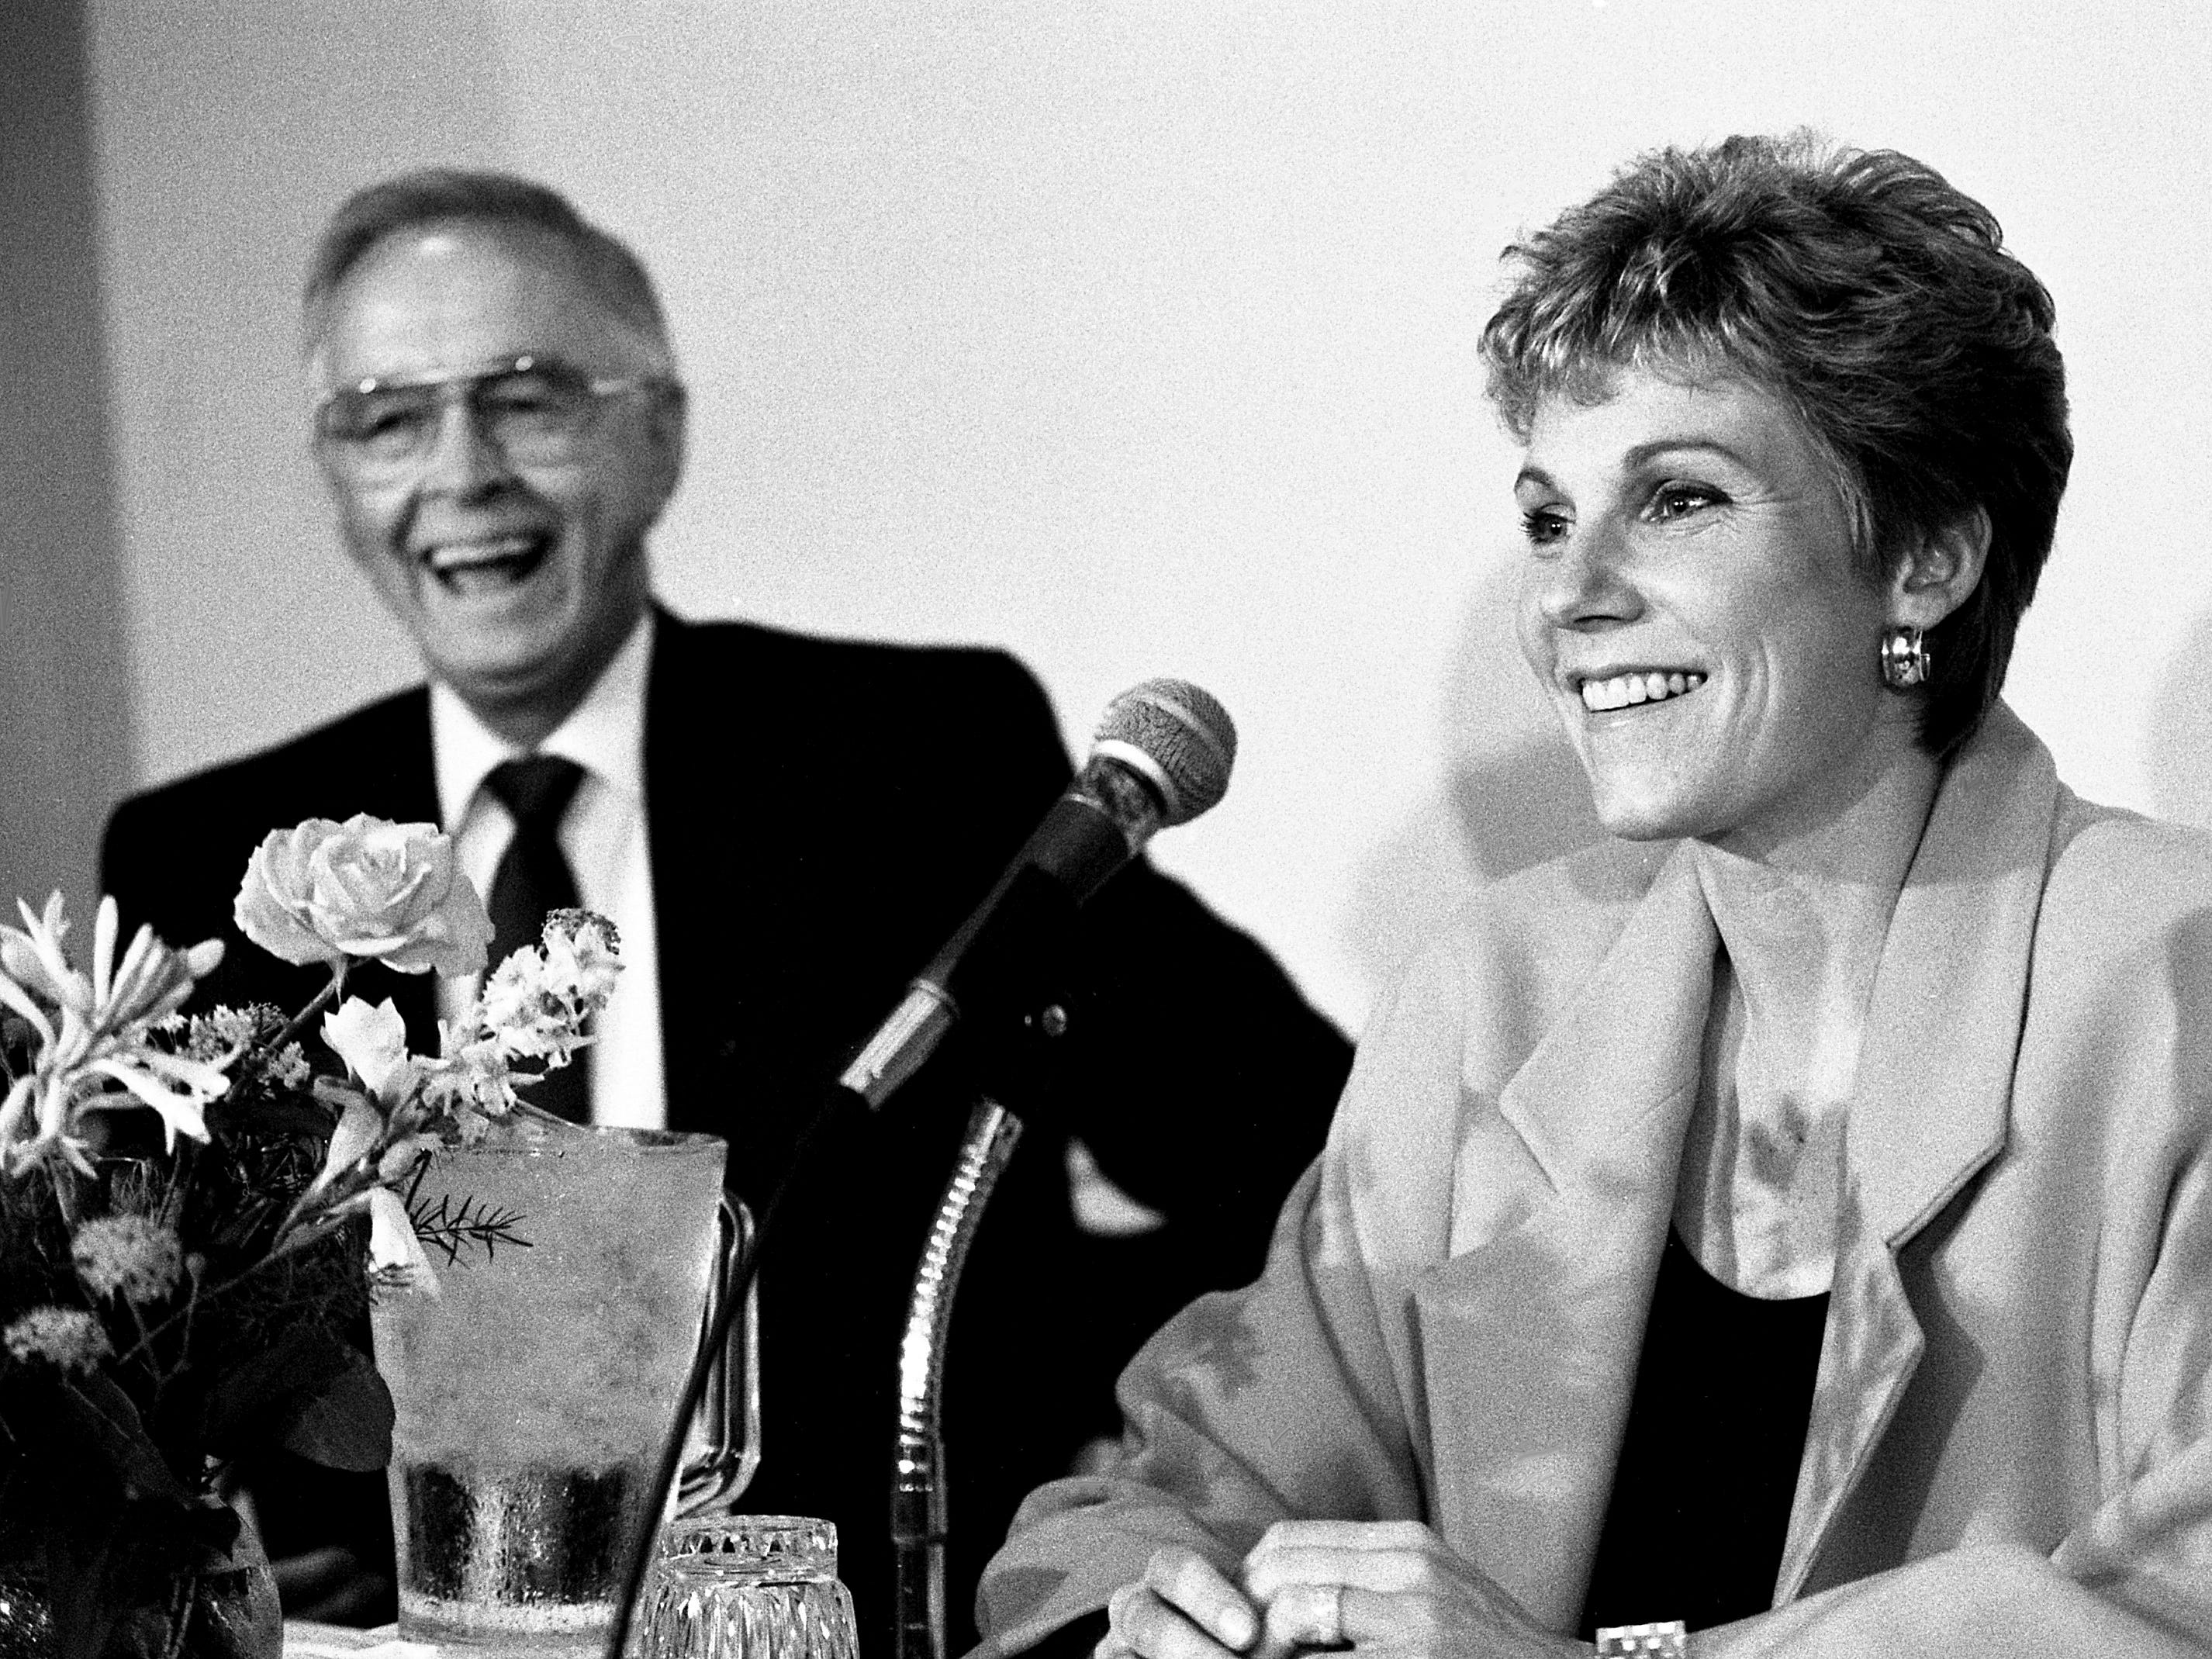 Anne Murray, right, and Capitol Records President Jim Foglesong field questions during a news conference Sept. 21, 1988, at the Vanderbilt Plaza Hotel. They are celebrating Murray's return to Nashville recording for her 20th anniversary with the label and a benefit concert on behalf of the Nashville Songwriters Association International in November.